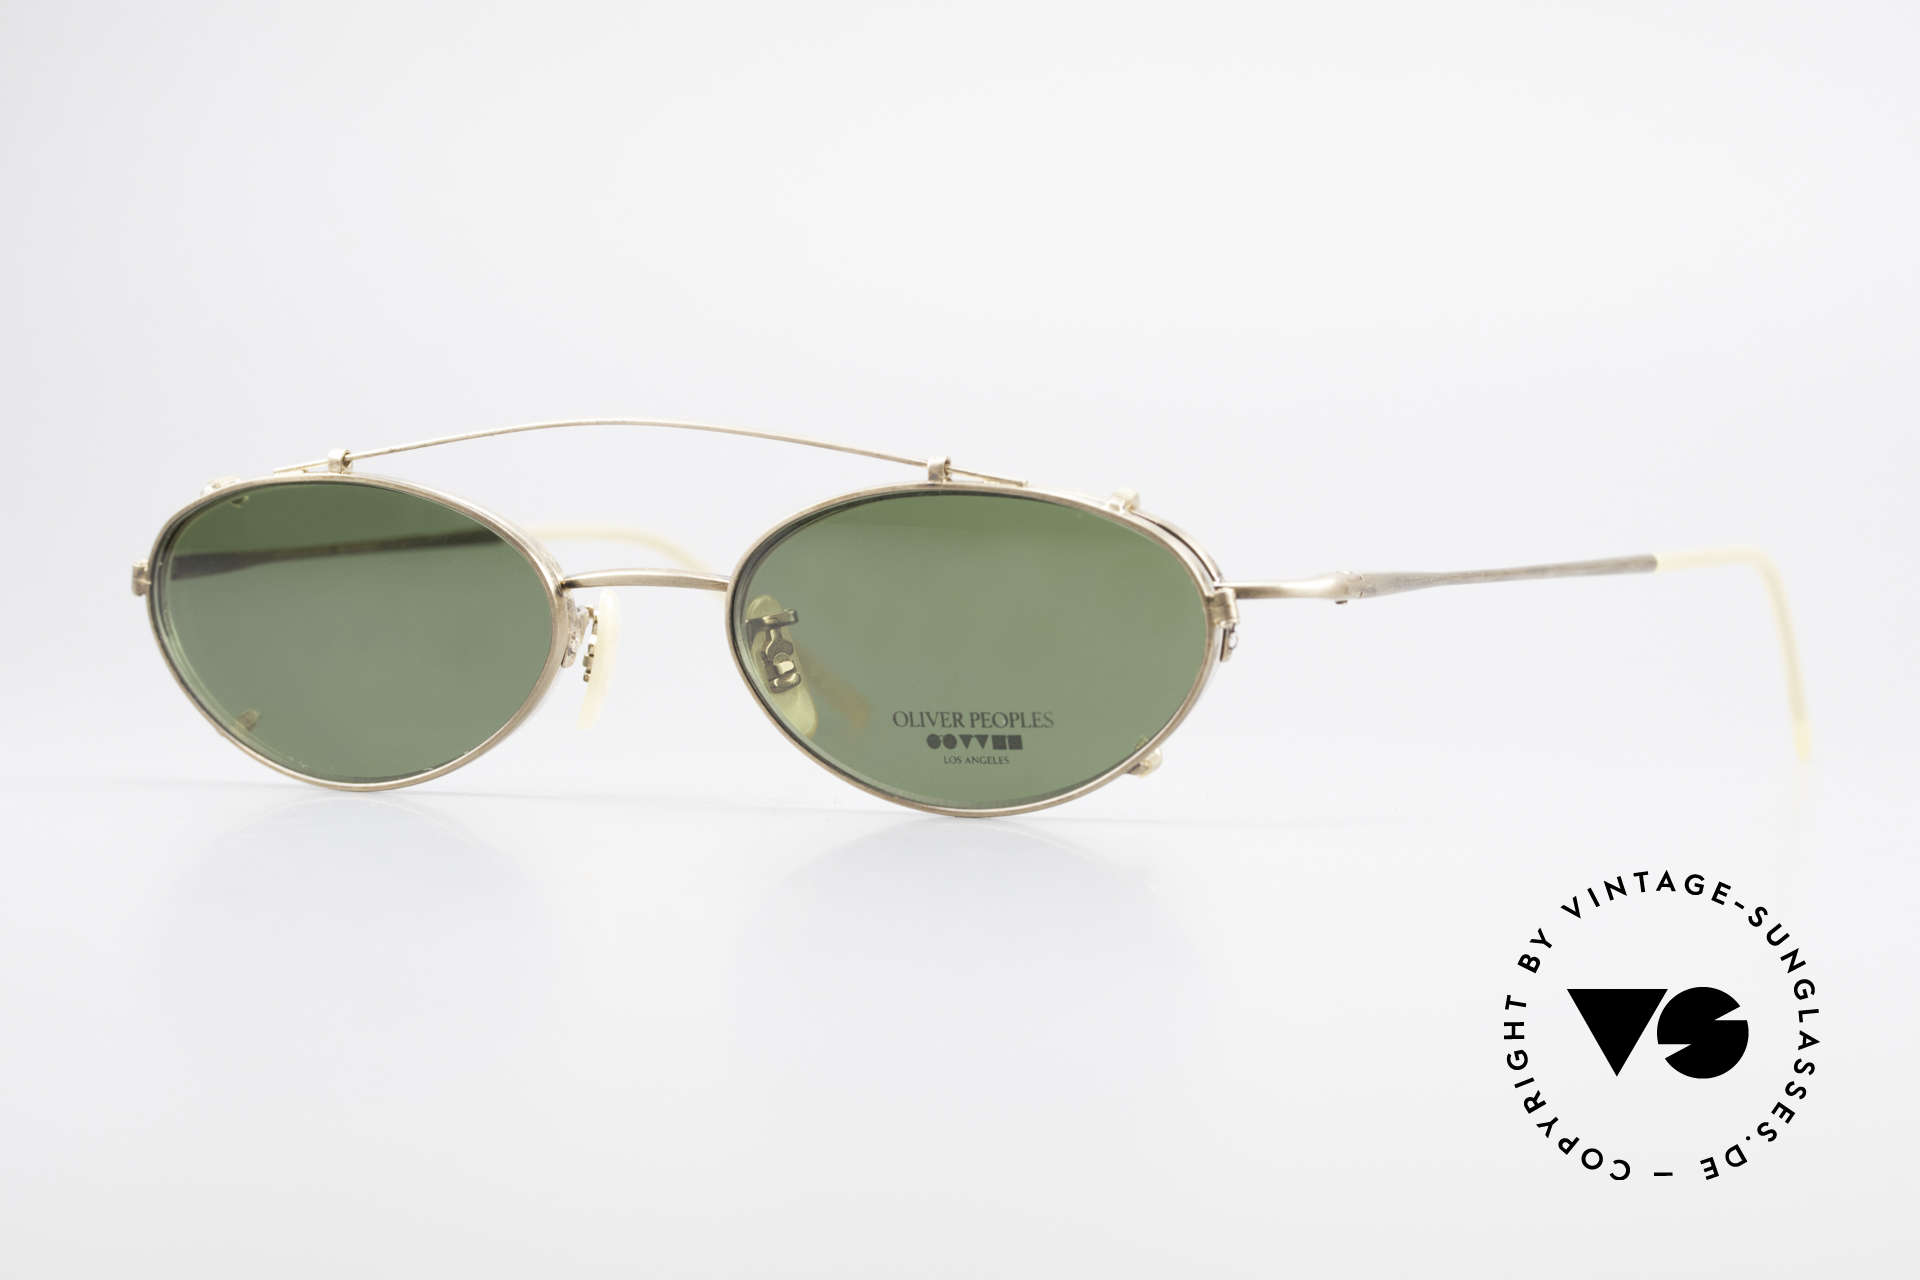 Oliver Peoples OP599 Oval Eyeglass-Frame Clip On, vintage Oliver Peoples eyeglasses from the 1990's, Made for Men and Women